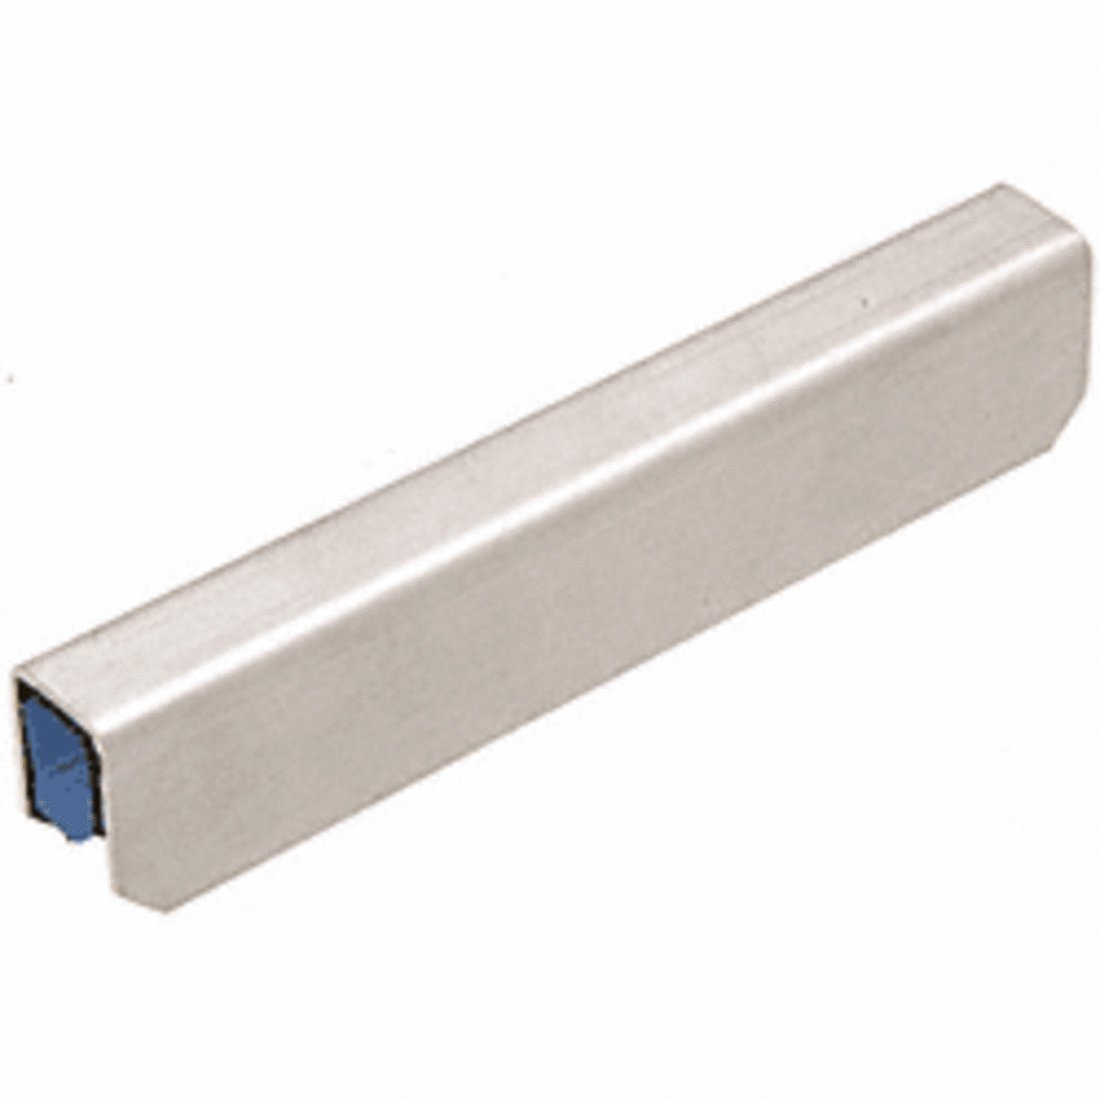 C.R. LAURENCE GRL10CSS CRL Stainless Steel Connector Sleeve for 1'' x 1-5/16'' 11 Gauge Cap Rail